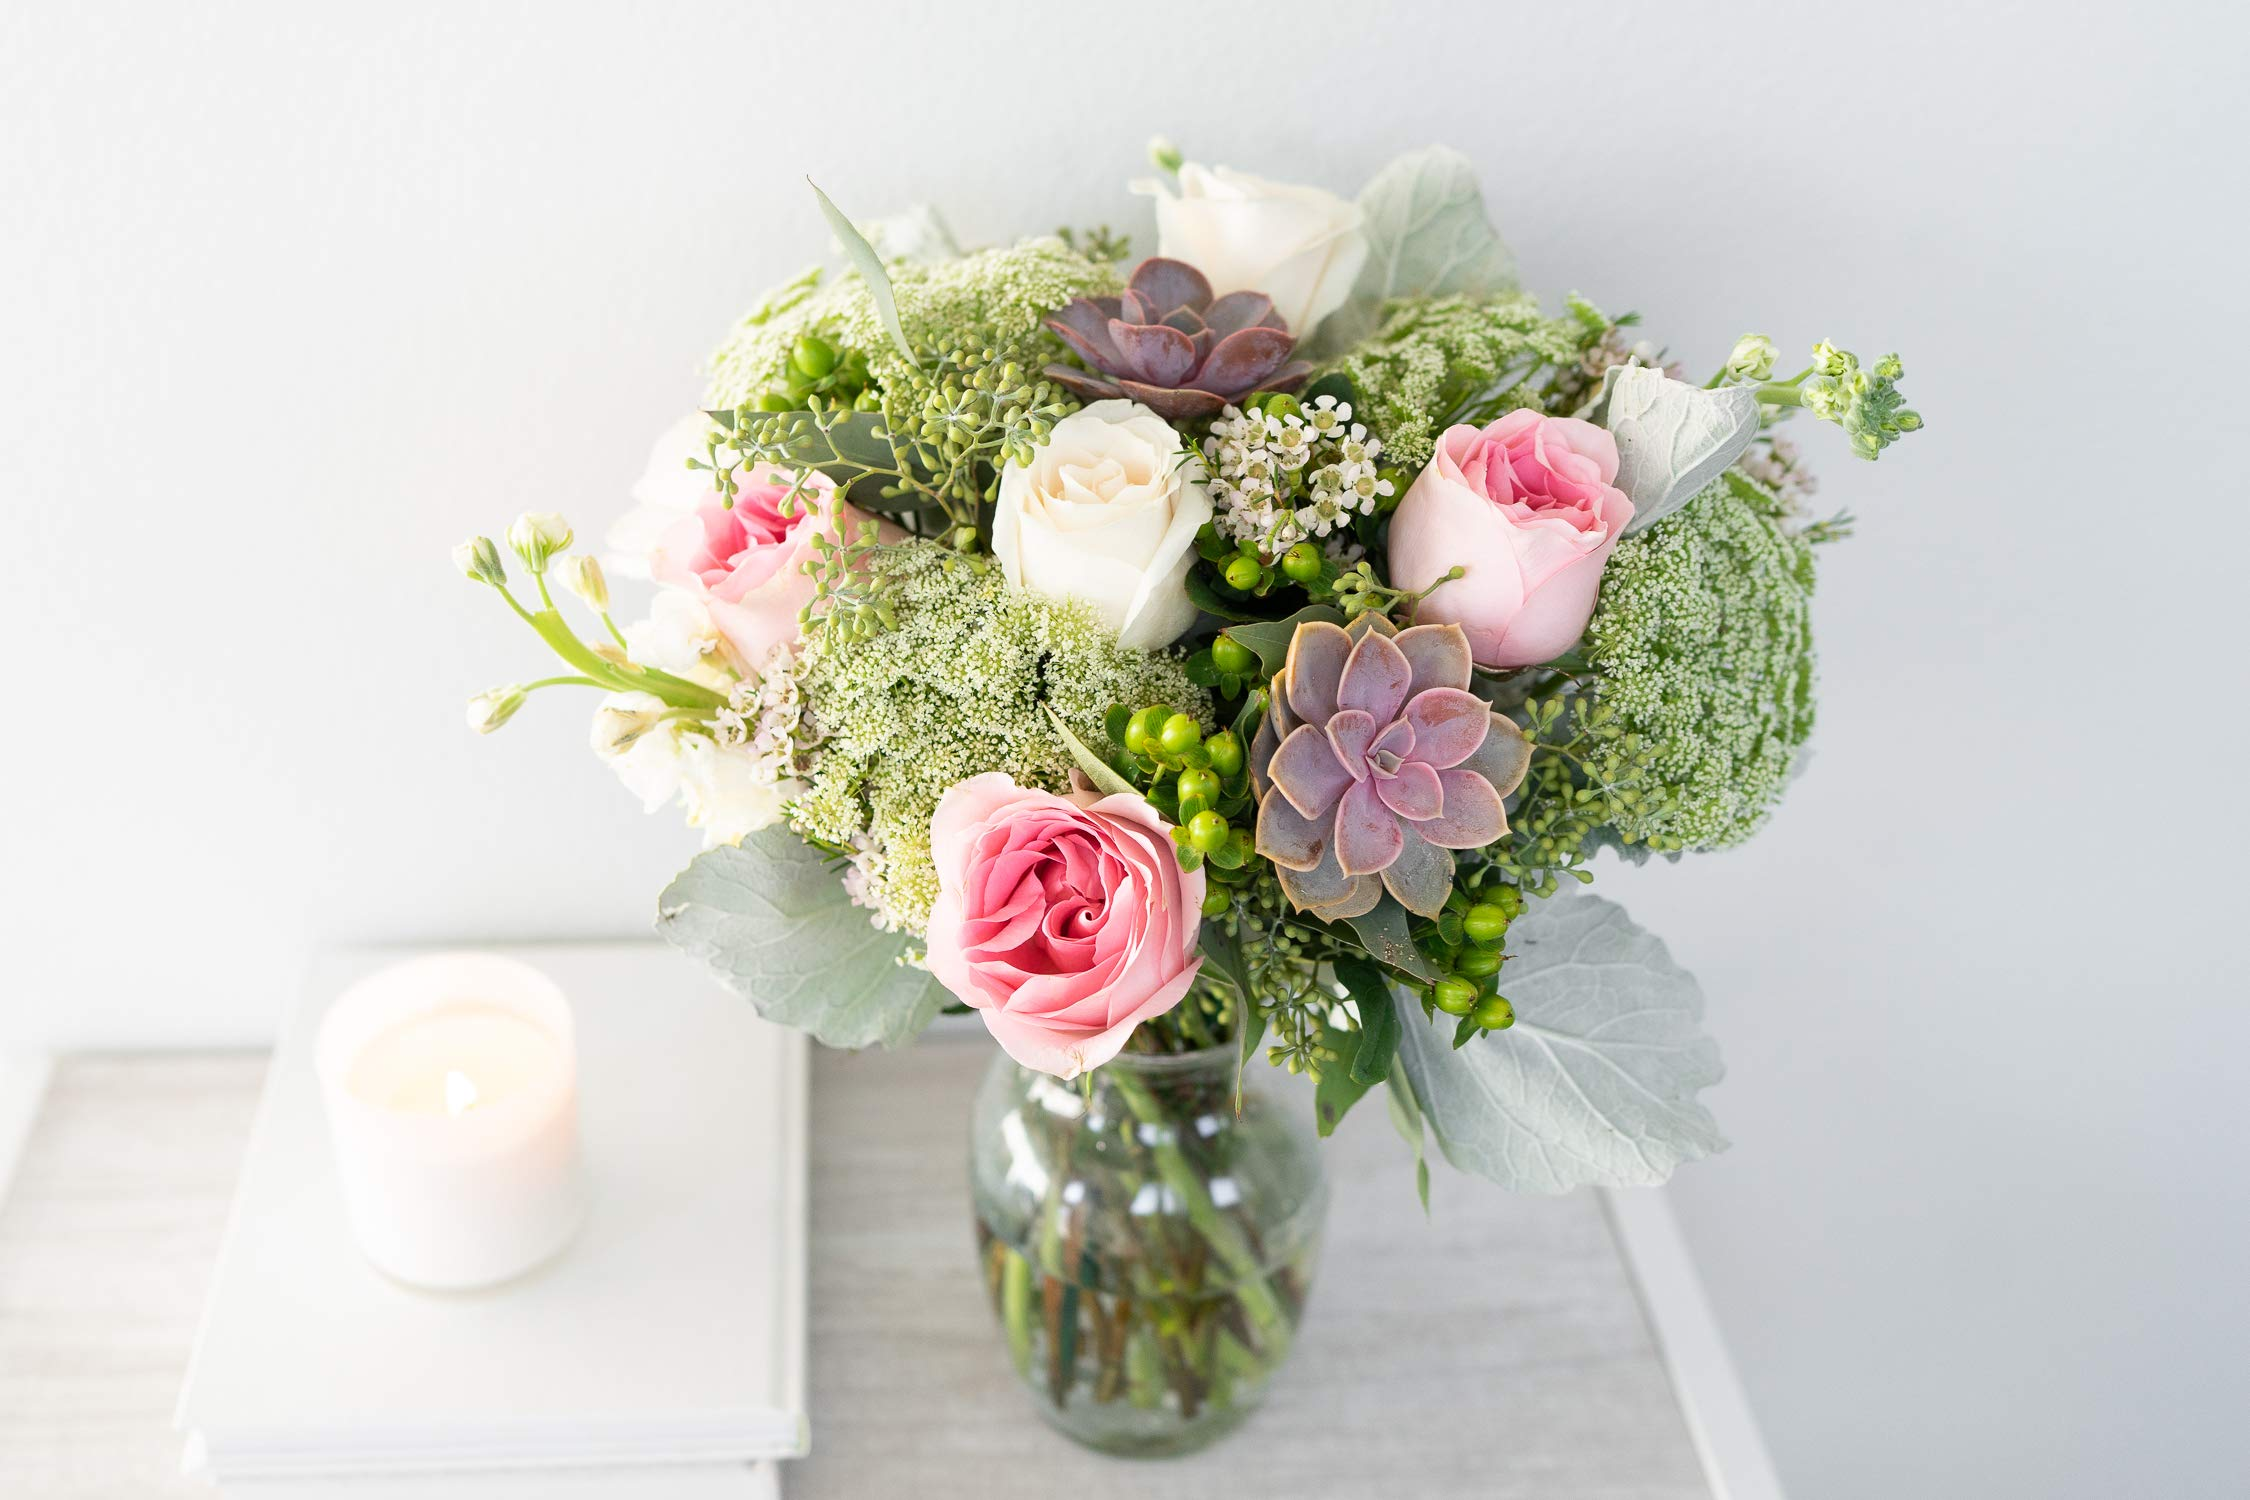 Flowers - Sweet Succulent Bouquet (Free Vase Included)